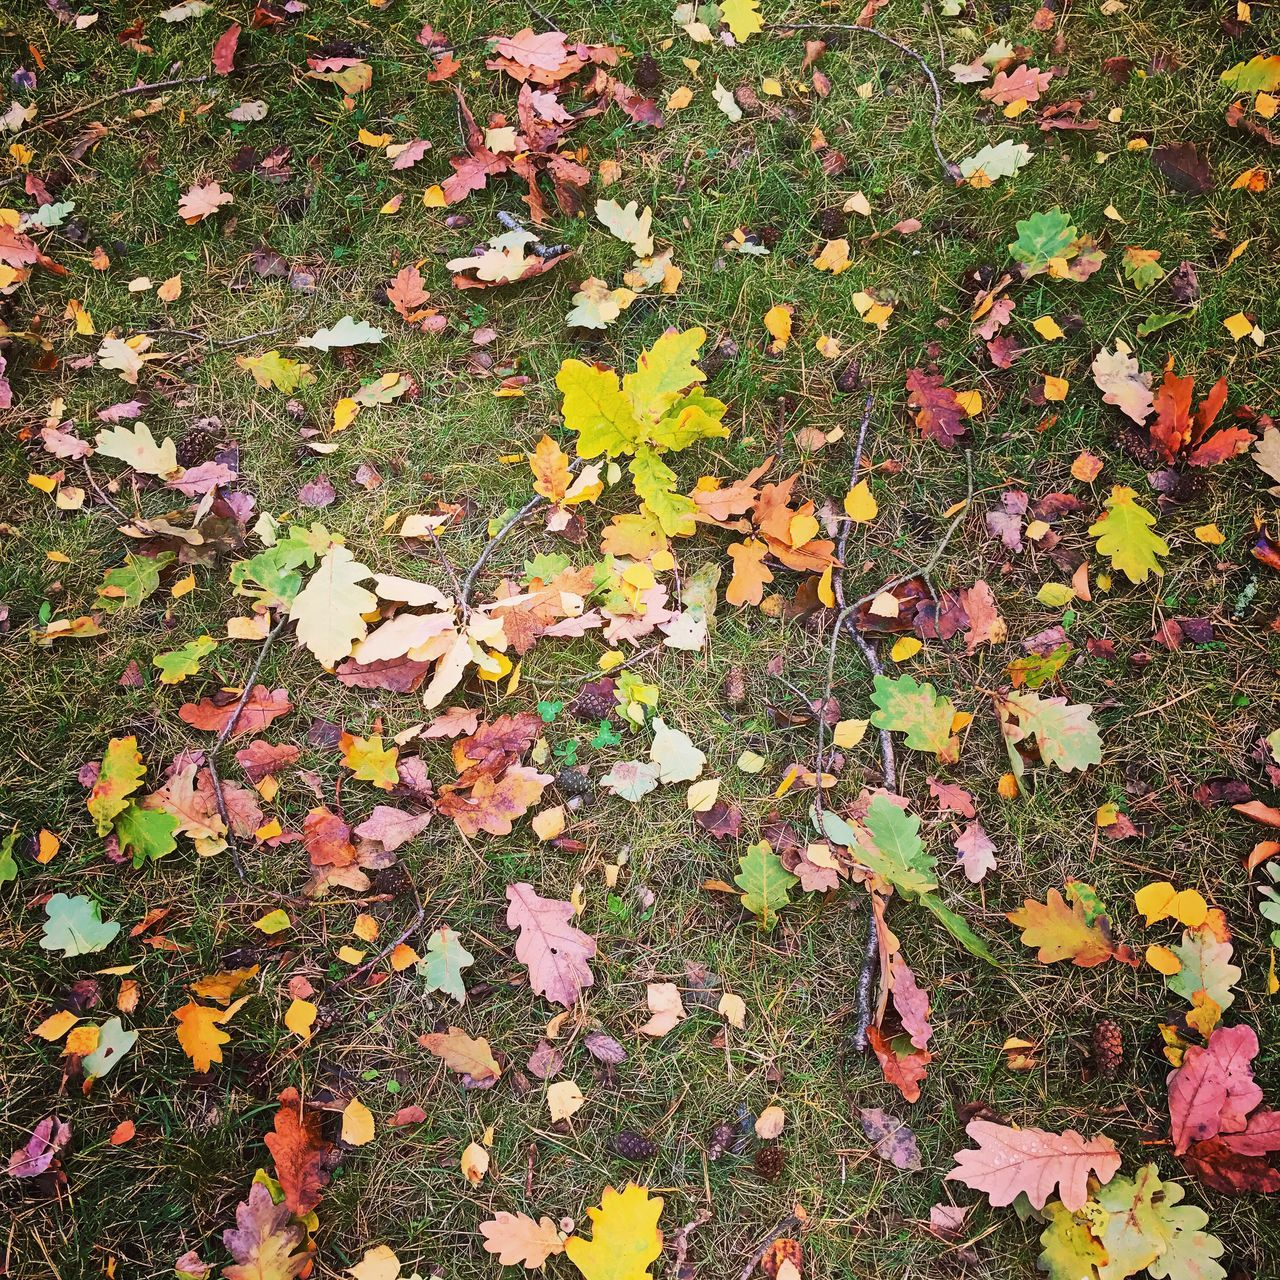 leaf, change, autumn, leaves, nature, fallen, maple, maple leaf, dry, abundance, beauty in nature, tranquility, outdoors, day, fragility, field, no people, scenics, close-up